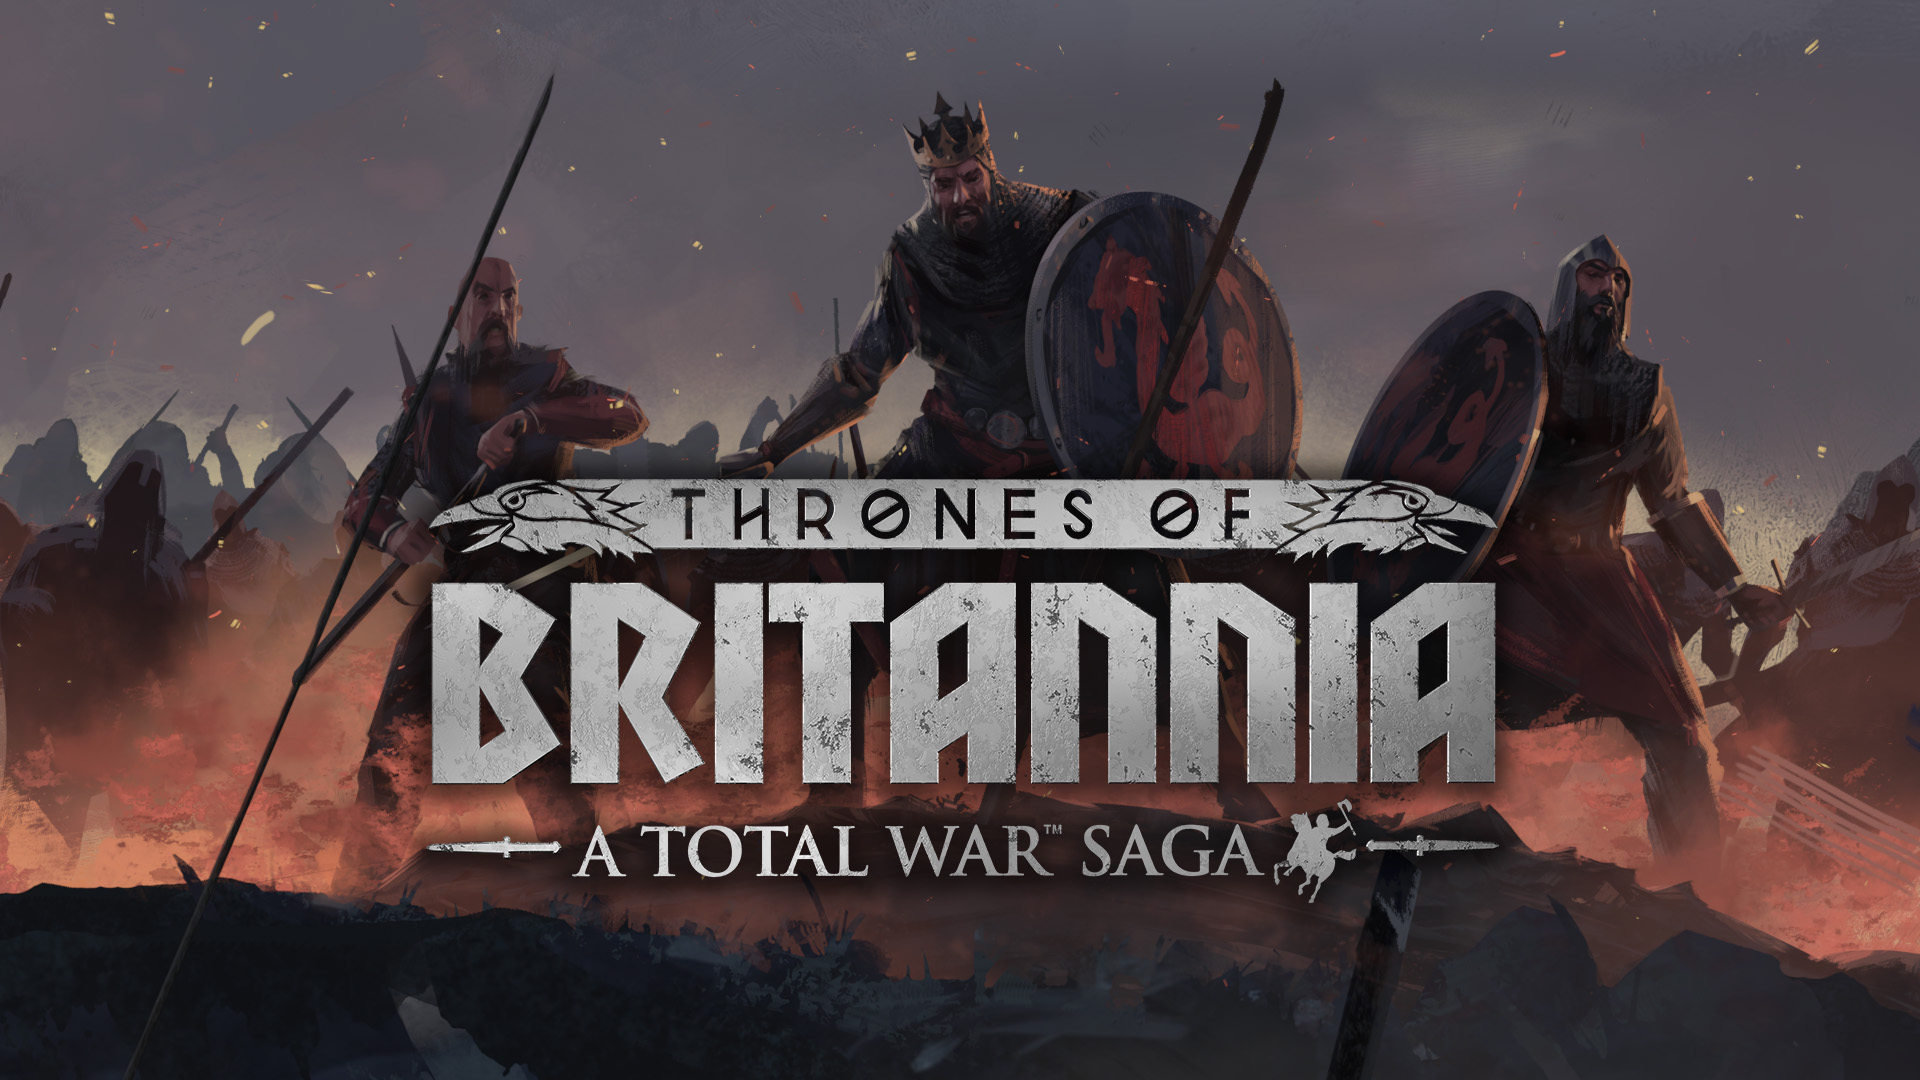 Total War: Thrones of Britannia'dan sinematik fragman yayA�nlandA�!